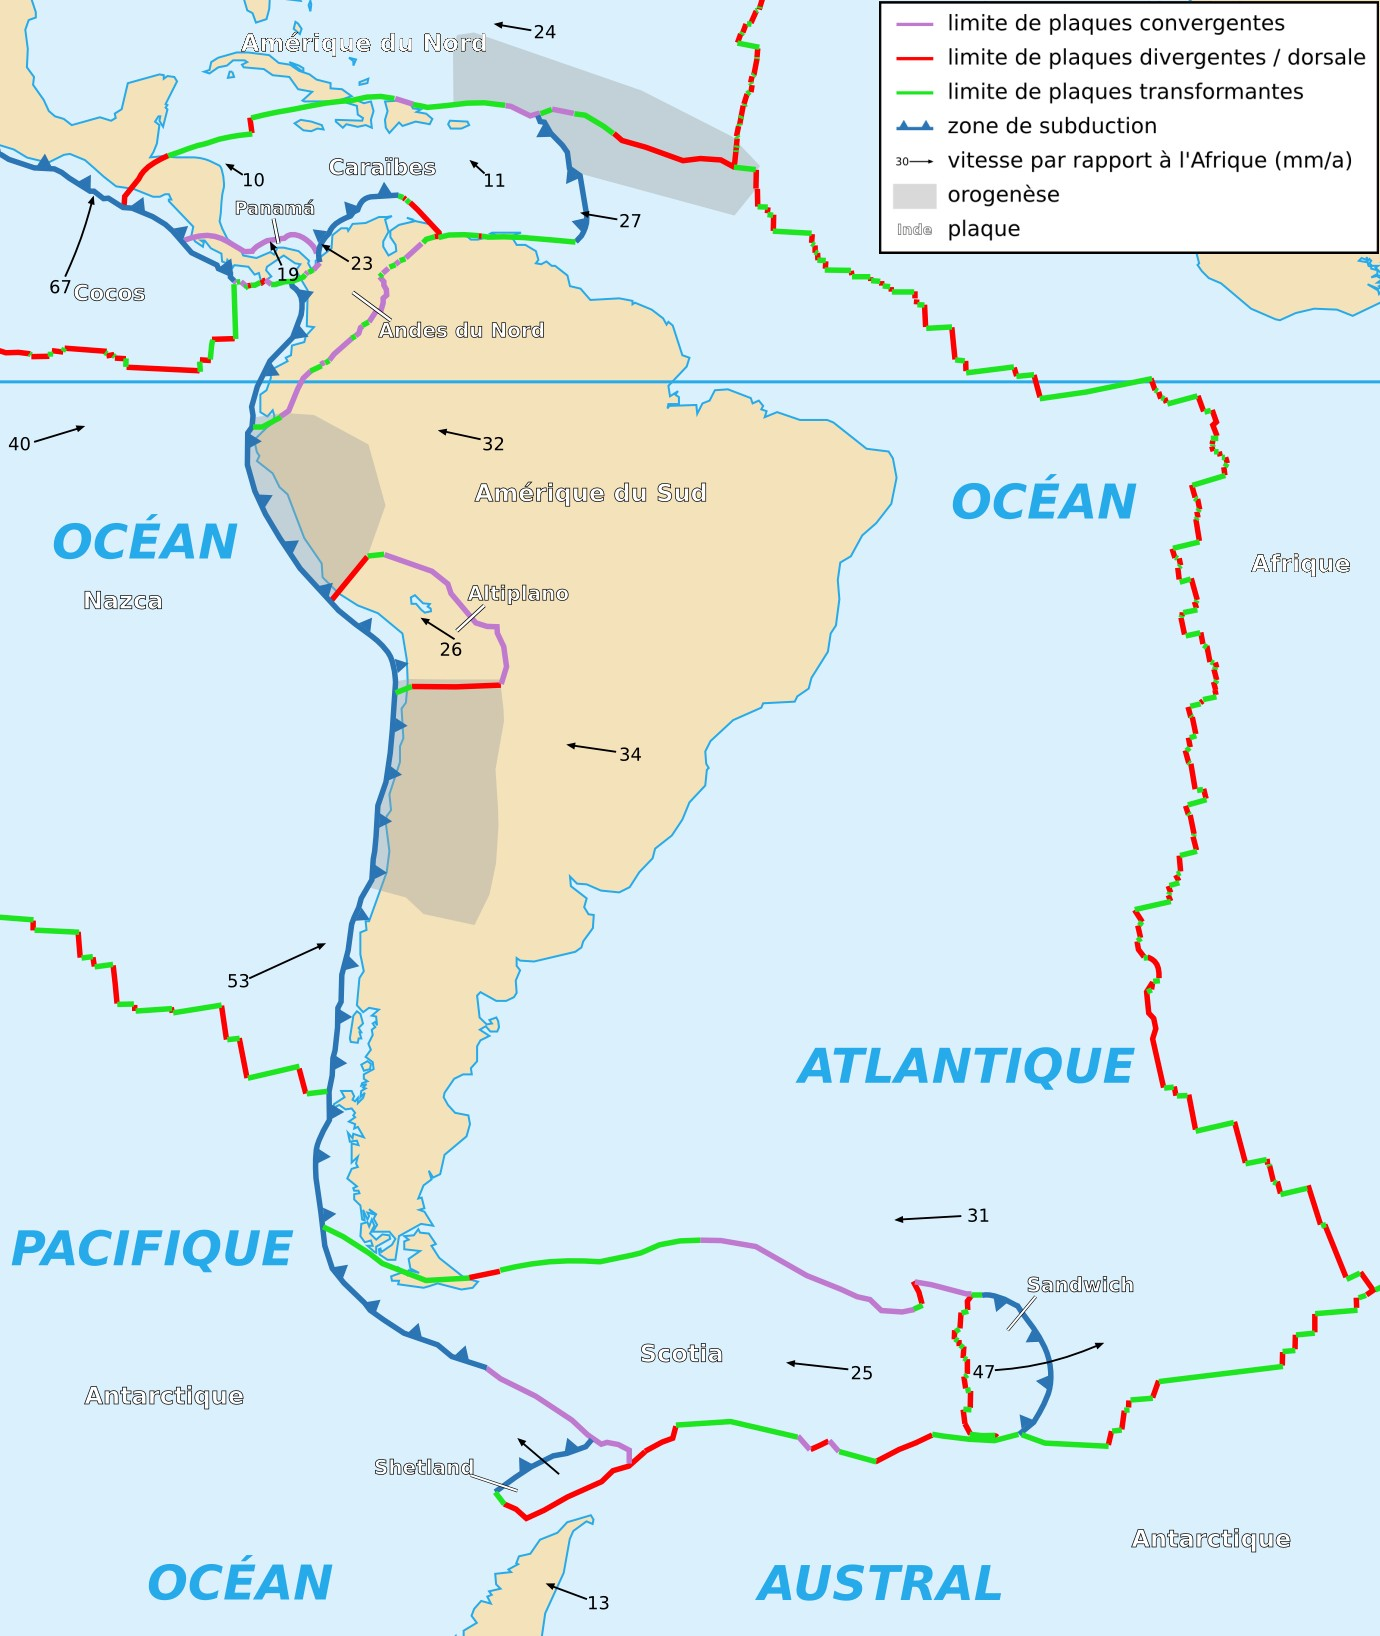 File:South American Plate map-fr.png - Wikimedia Commons